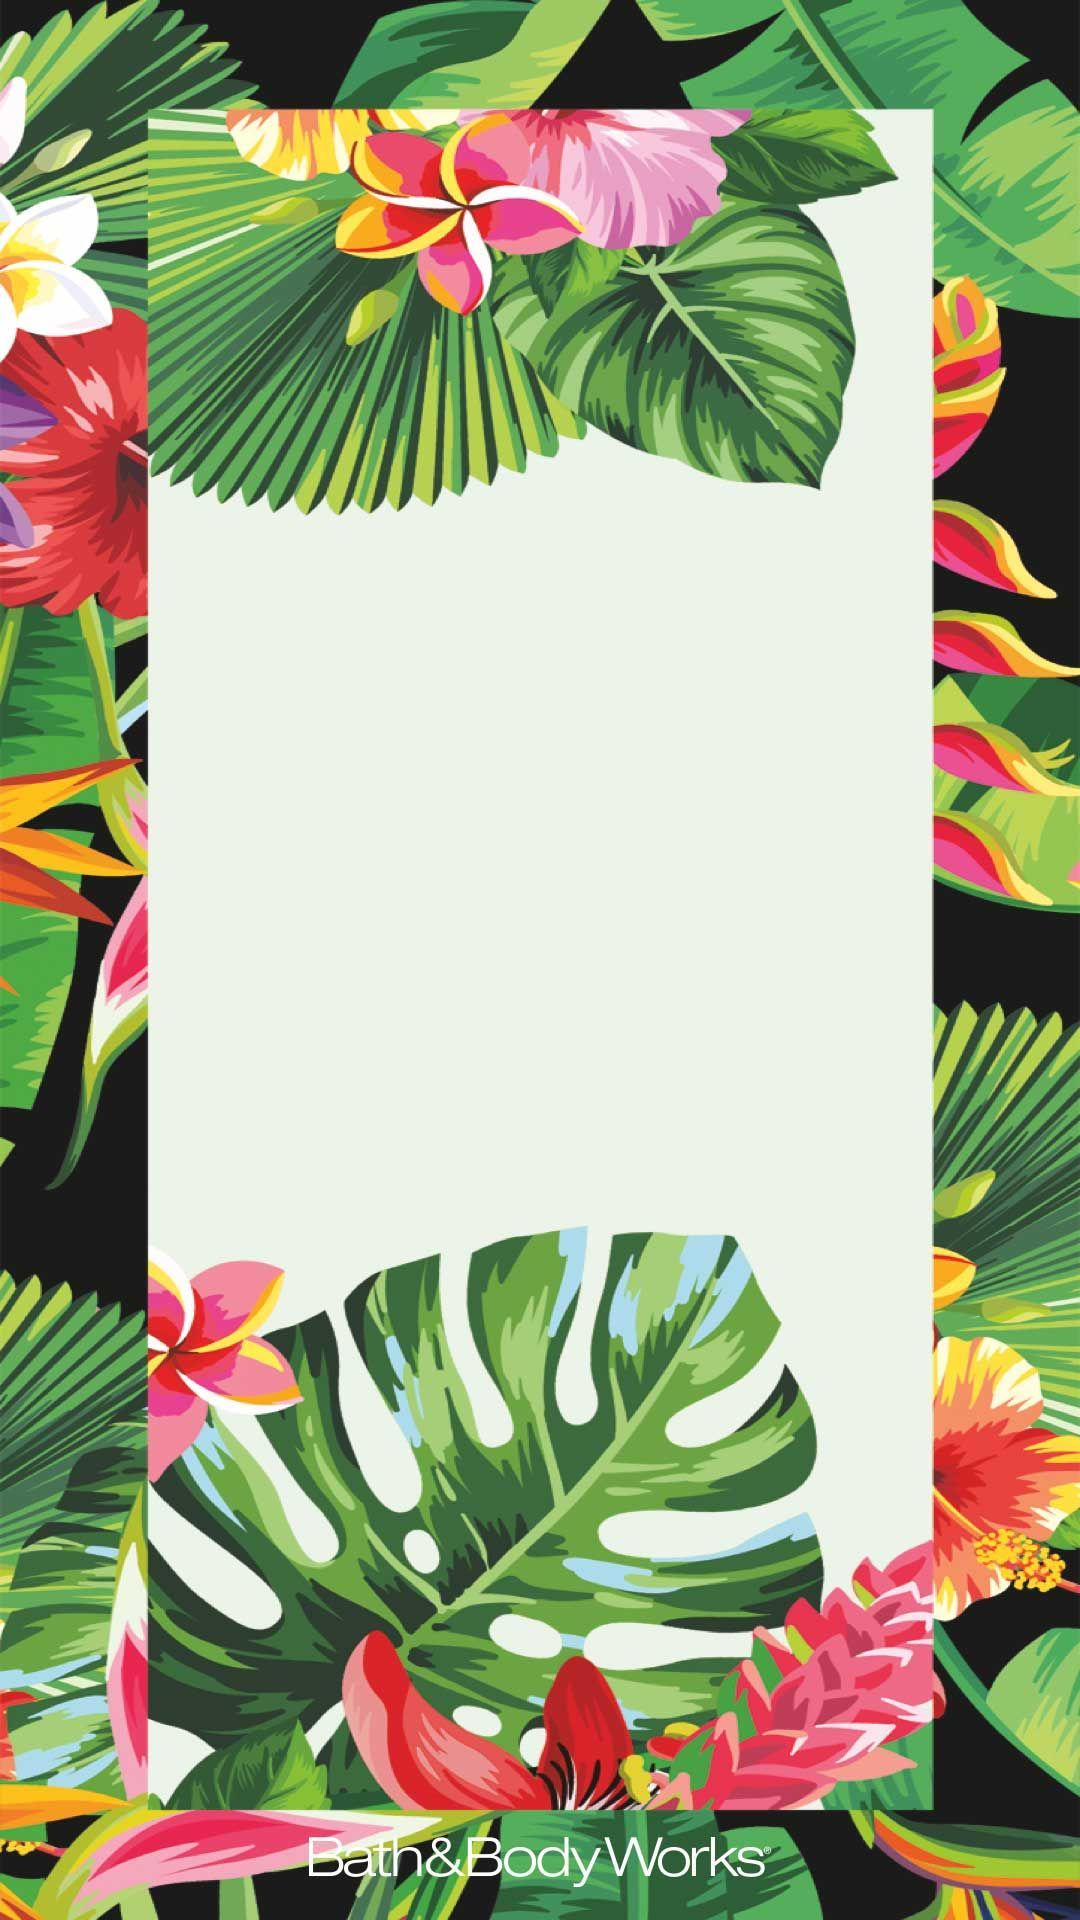 Tropical Flowers Palm Leaves Iphone Wallpaper Also Tropical Flower Wallpaper Iphone 503411 Hd Wallpaper Backgrounds Download Today's video is a tropical leaves green screen pack. tropical flowers palm leaves iphone